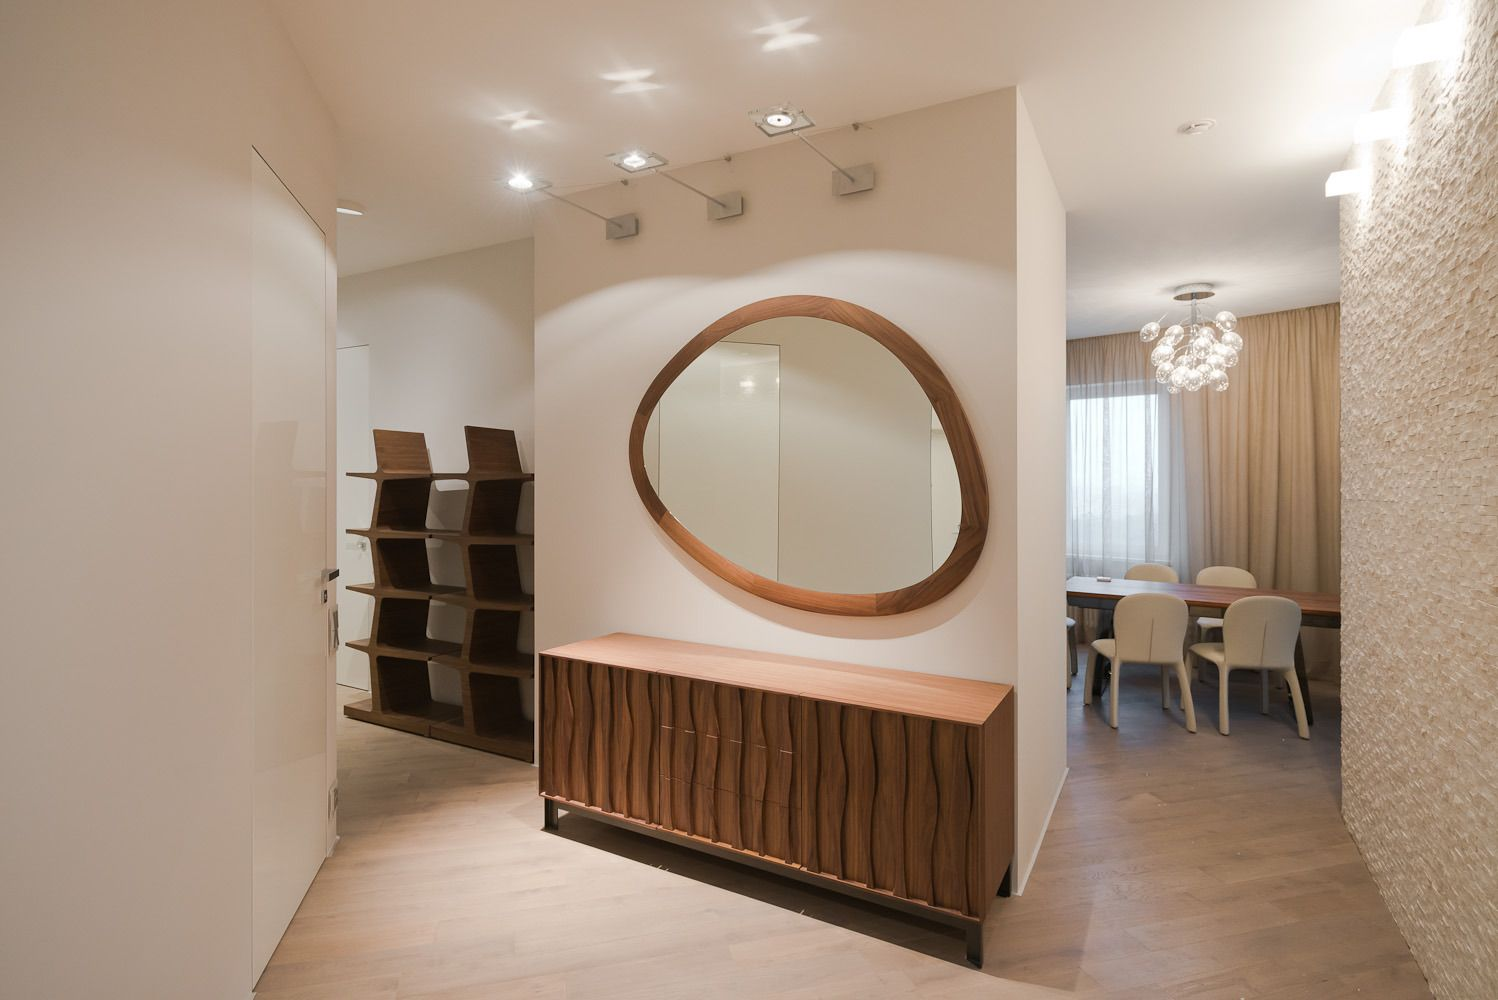 Modern Hallway Decoration Design Ideas. Storage system for your clothes and footwear right at the entrance to the apartment